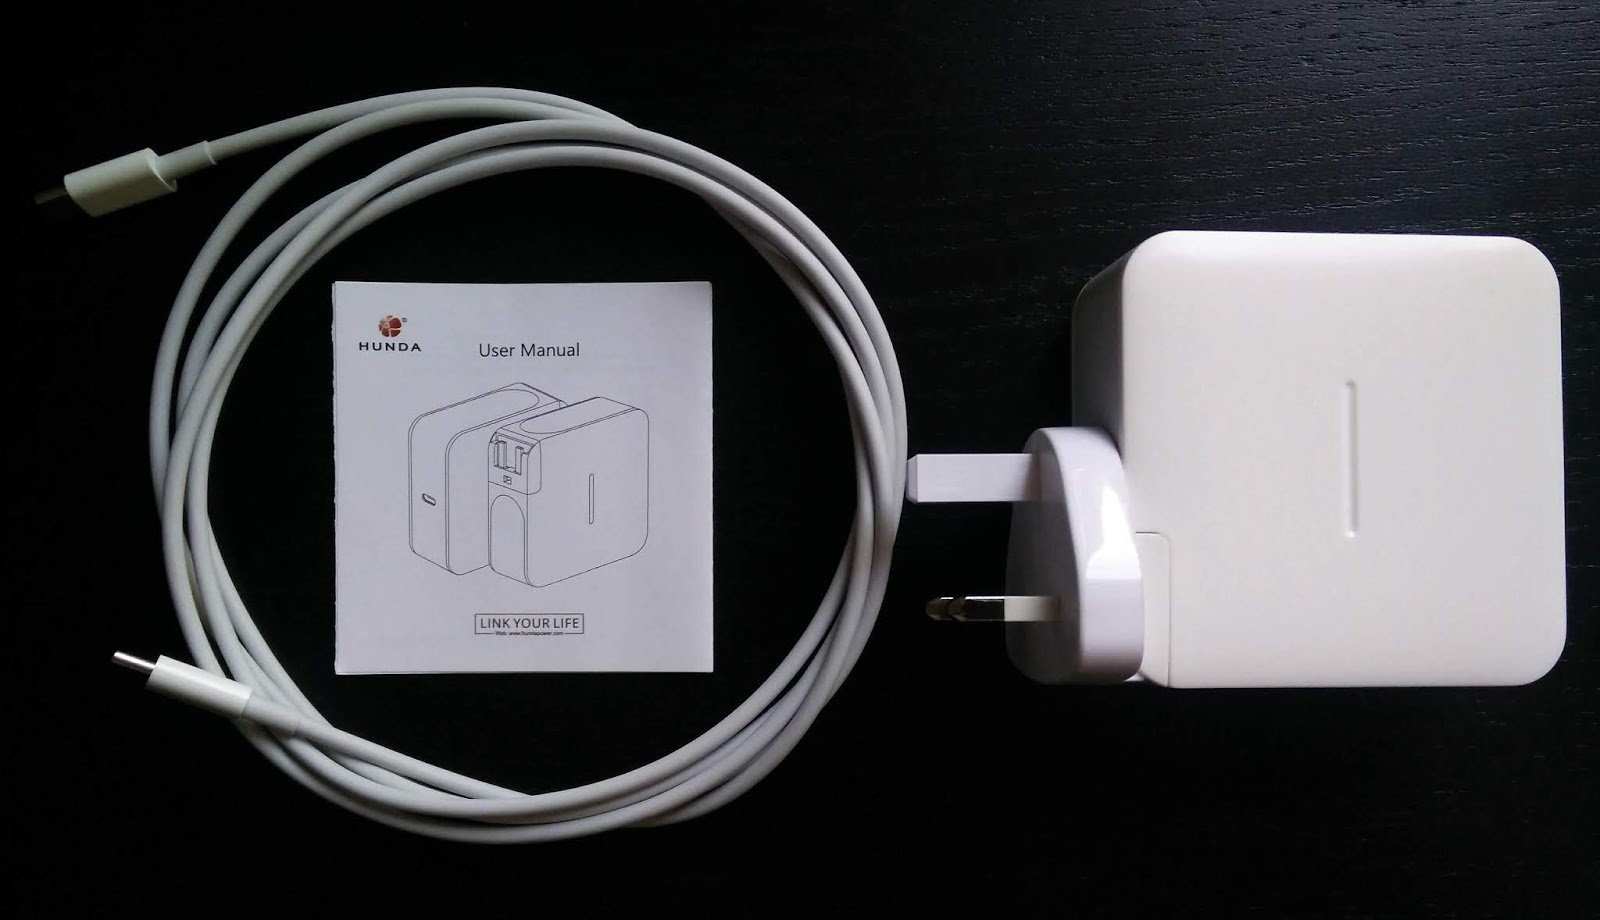 HUNDA 61W USB C PD Power Adapter Review